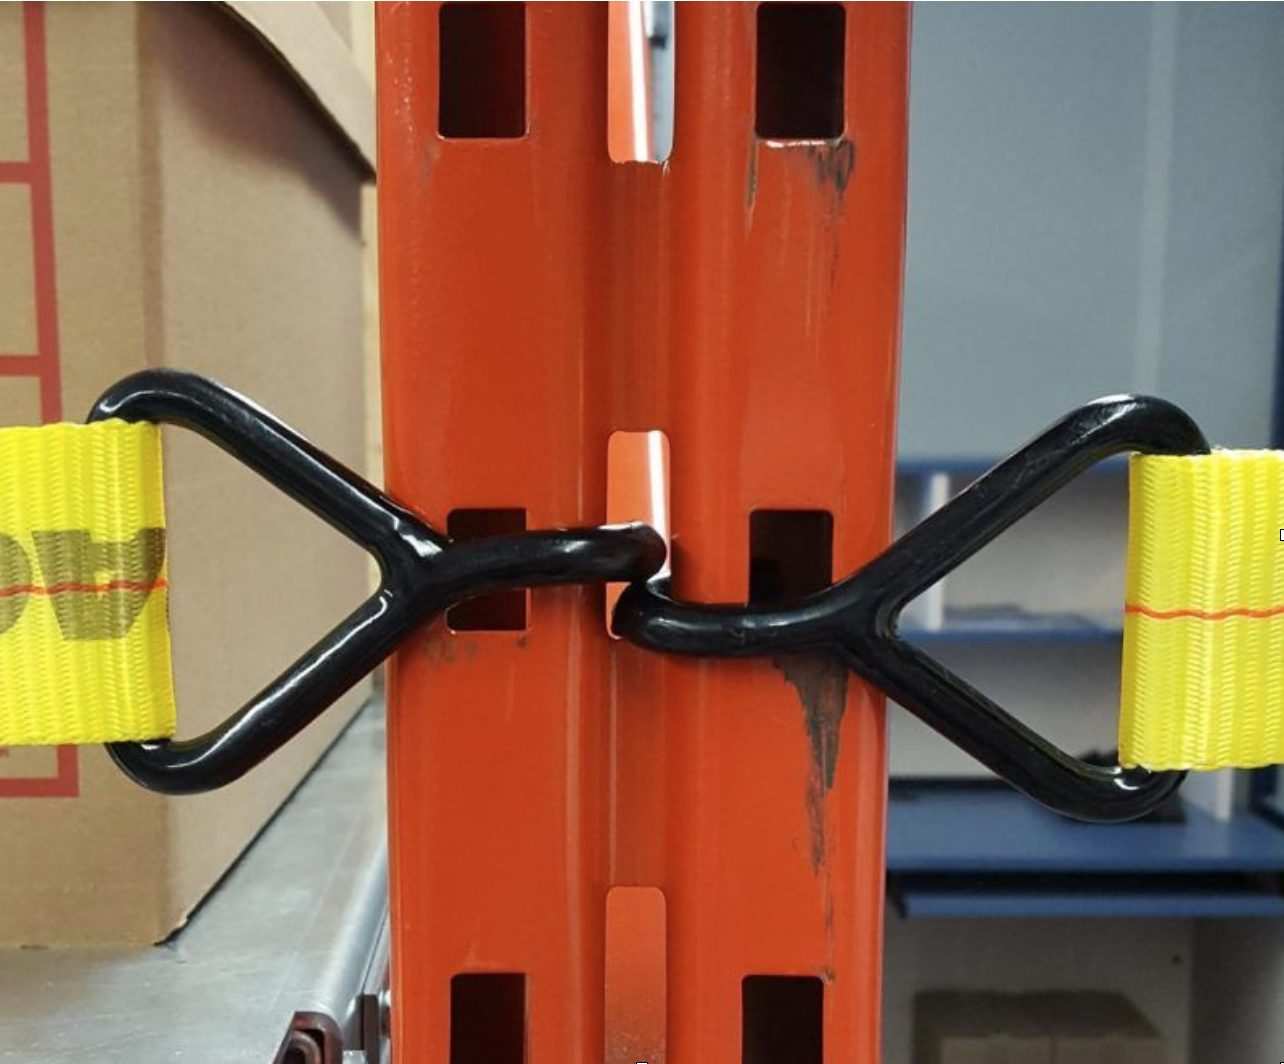 J Hook Style Attachment sewn into safety rack netting for quick and easy installation on universal pallet rack styles.